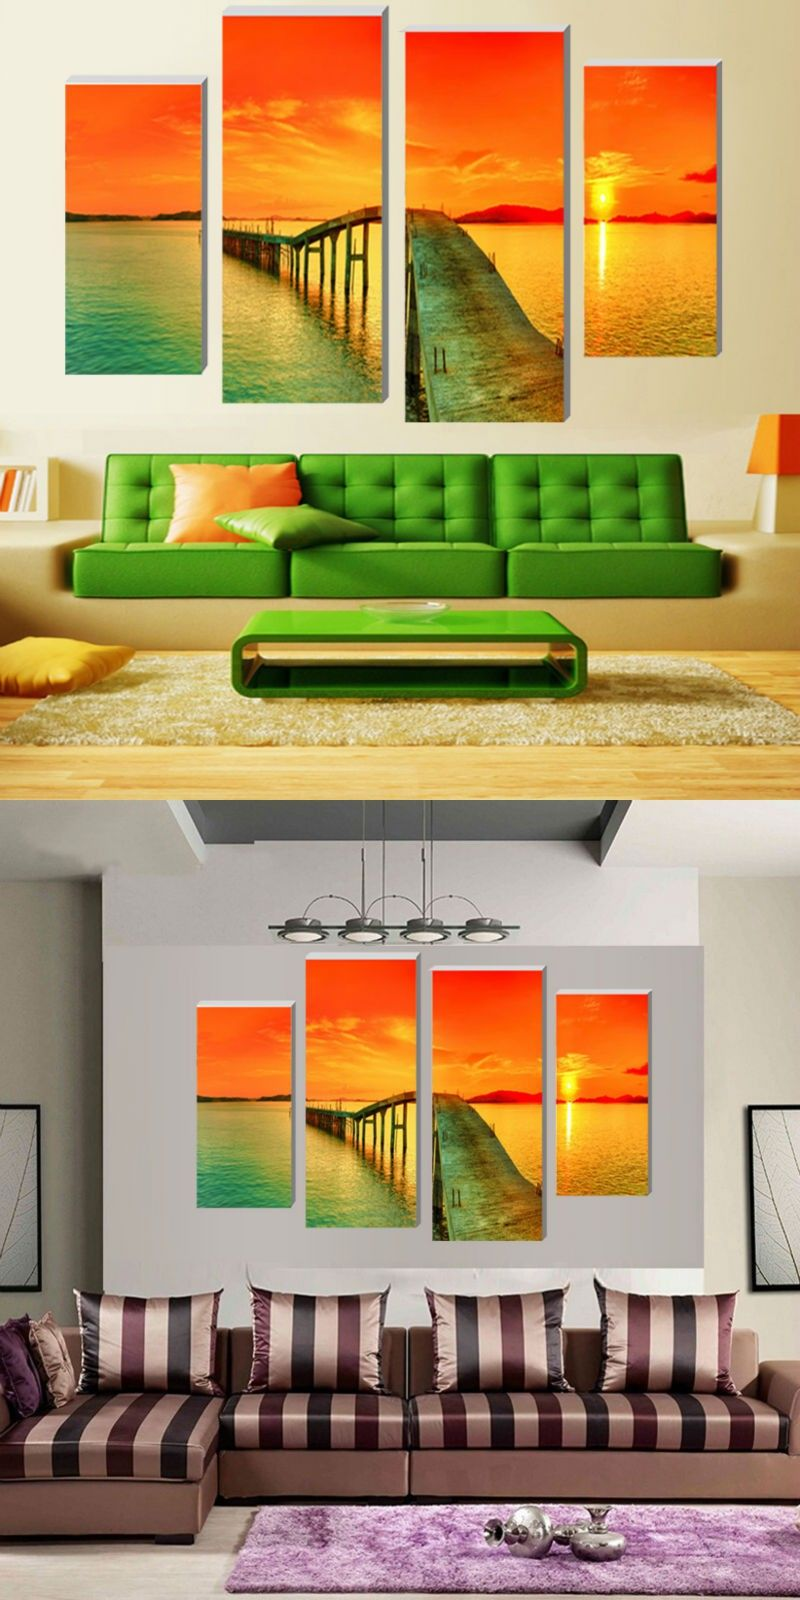 Modular pictures Caribbean Modern Home Decoration bedroom